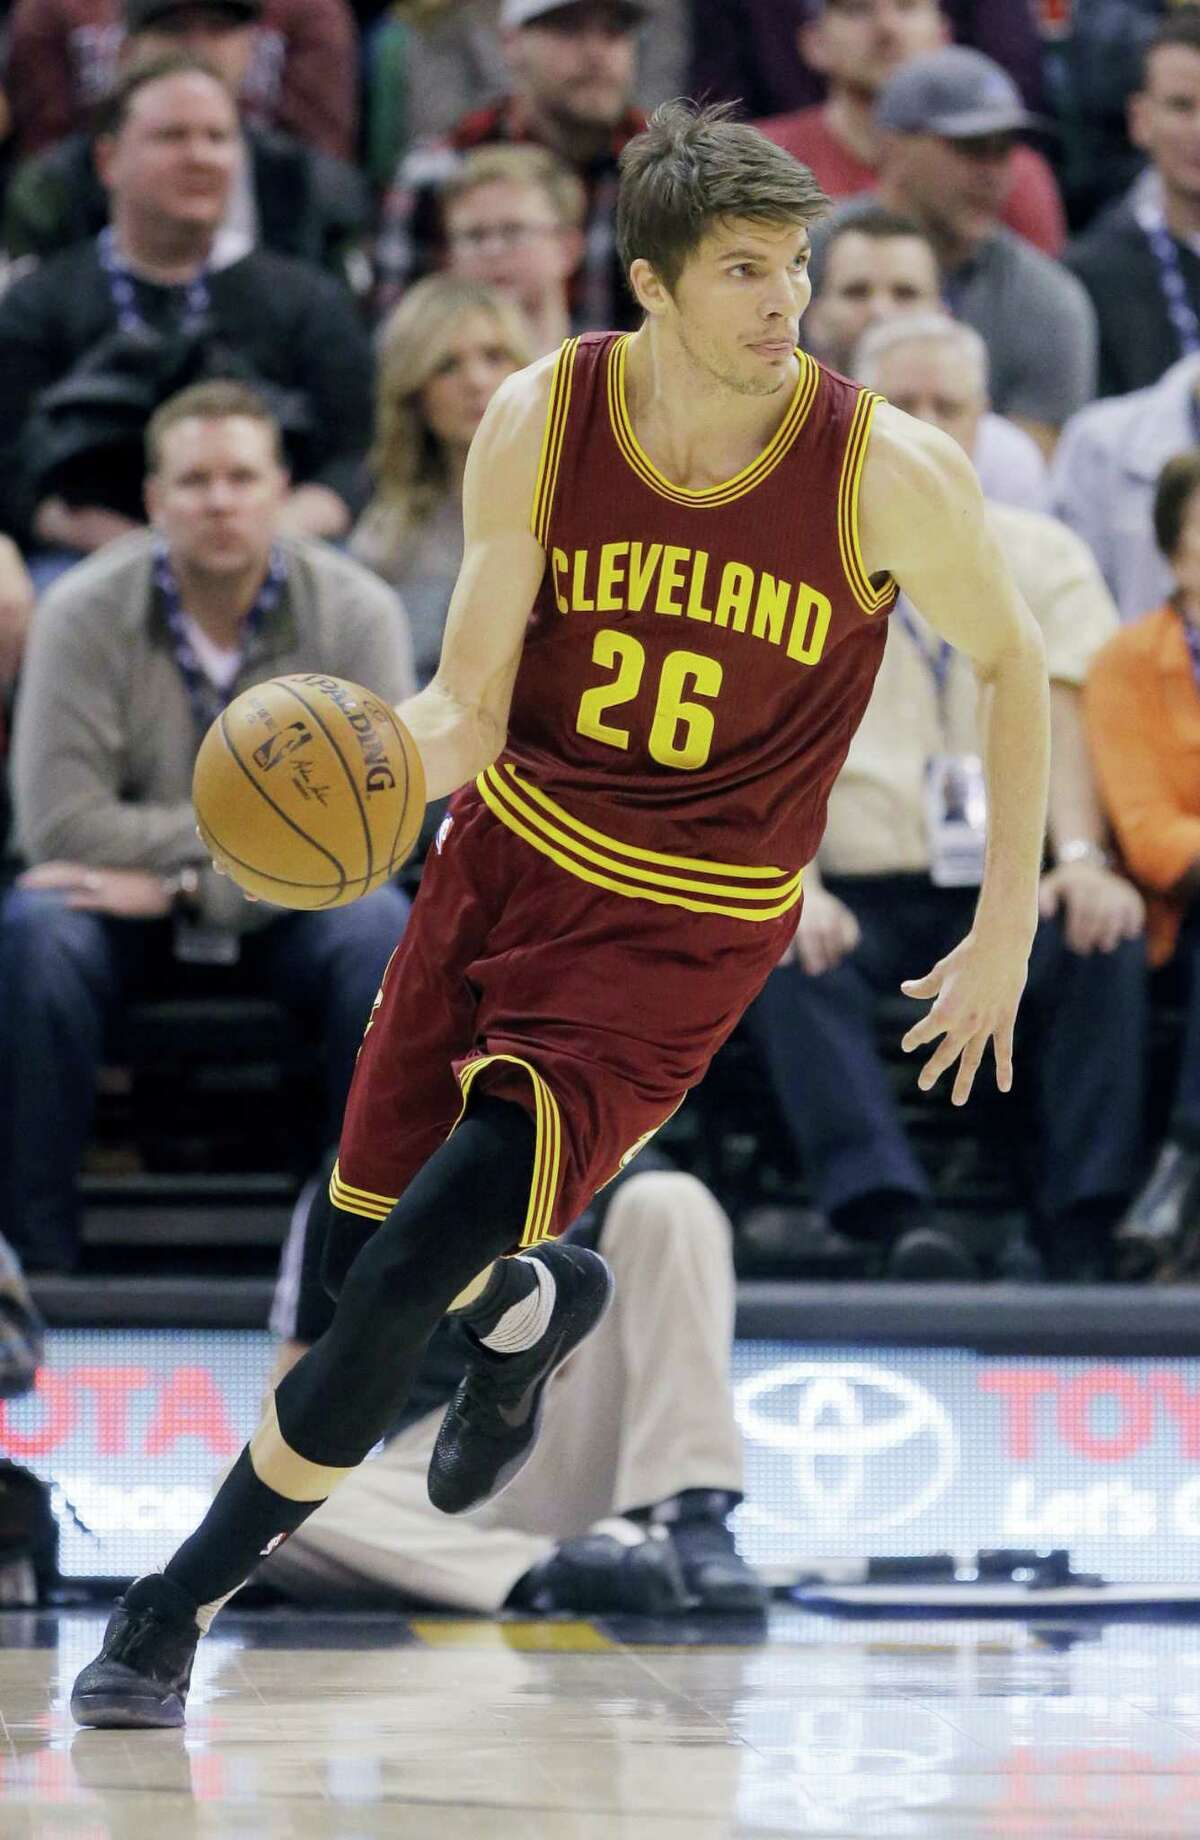 Cleveland Cavaliers guard Kyle Korver (26) brings the ball up court in the first half during an NBA basketball game against the Utah Jazz on Jan. 10, 2017 in Salt Lake City.